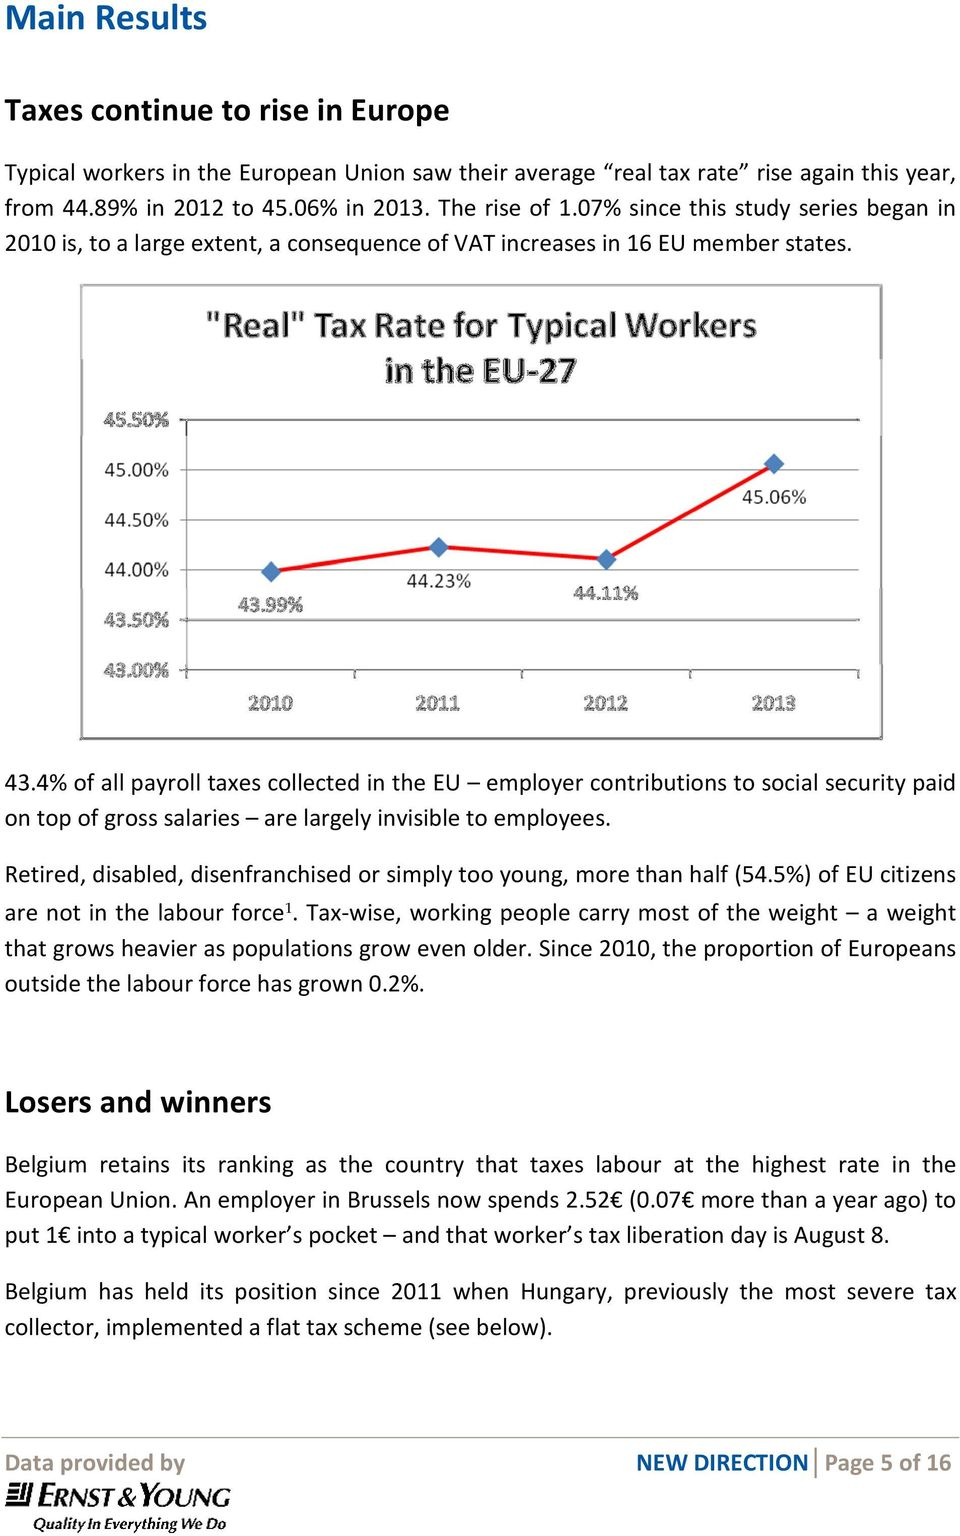 4% of all payroll taxes collected in the EU employer contributions to social security paid on top of gross salaries are largely invisible to employees.